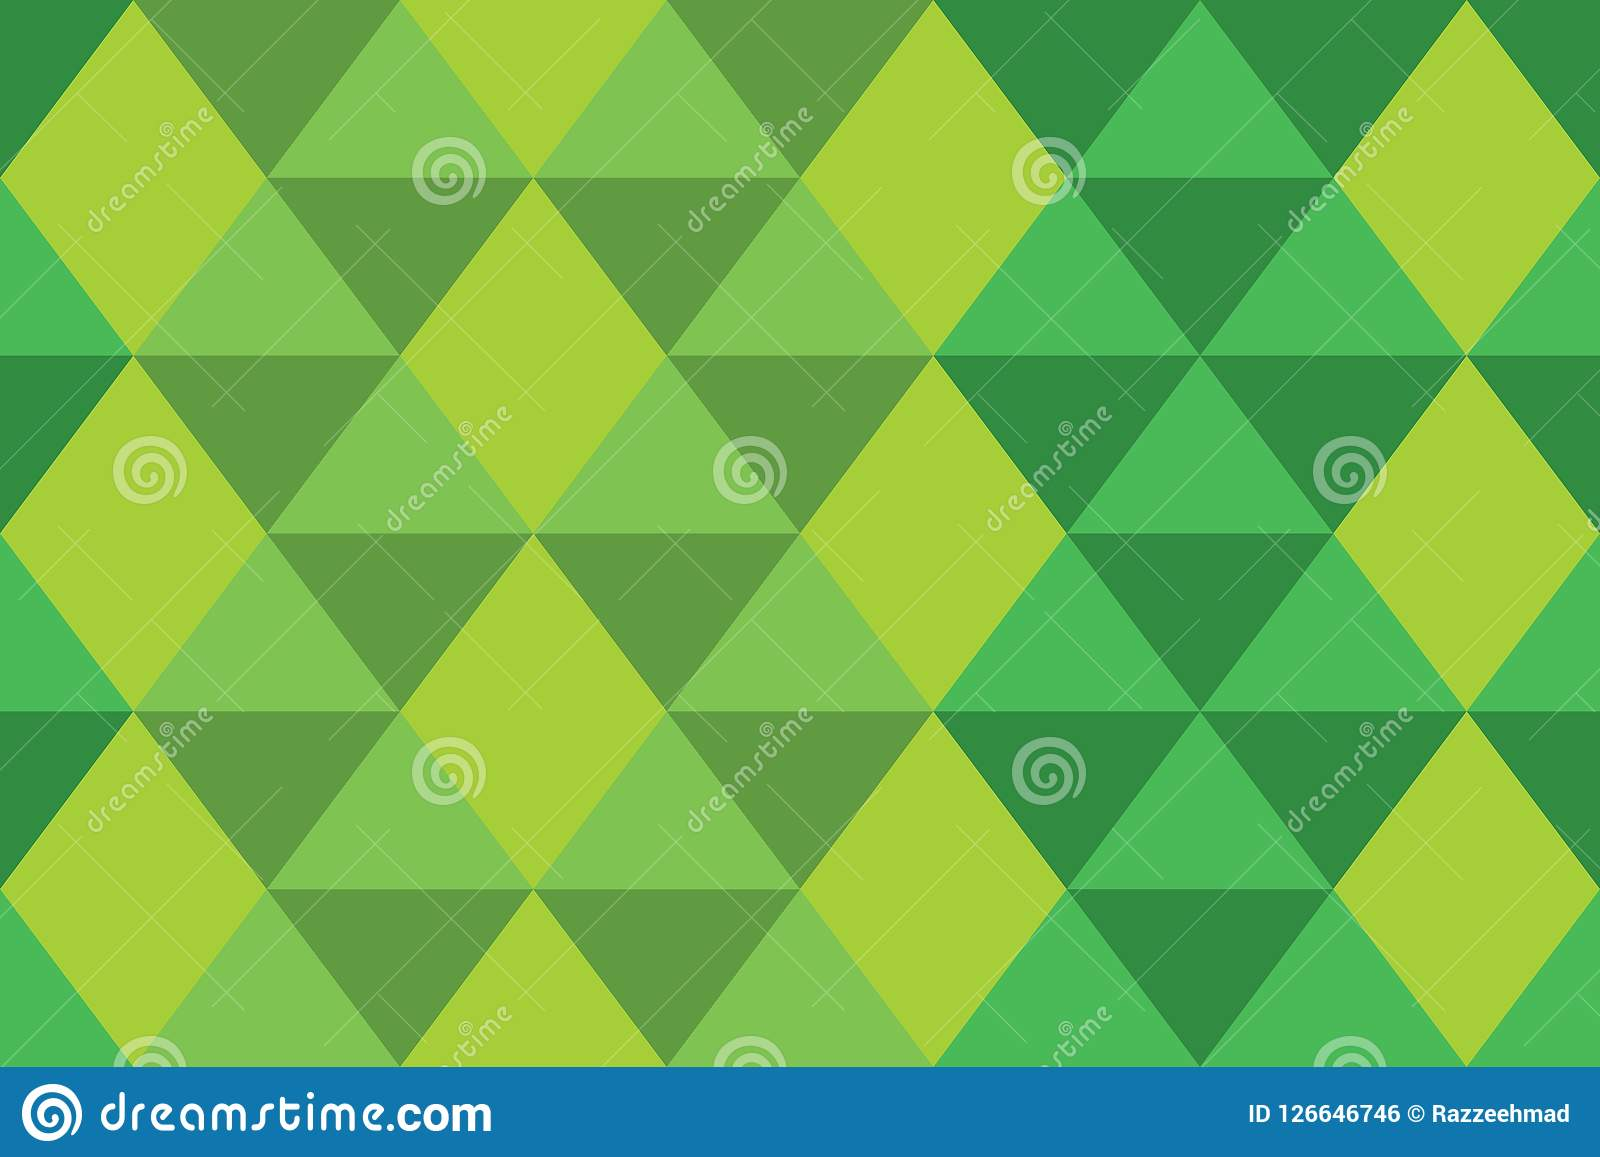 Background triangle green gradation geomatric texture banner wallpaper modern style